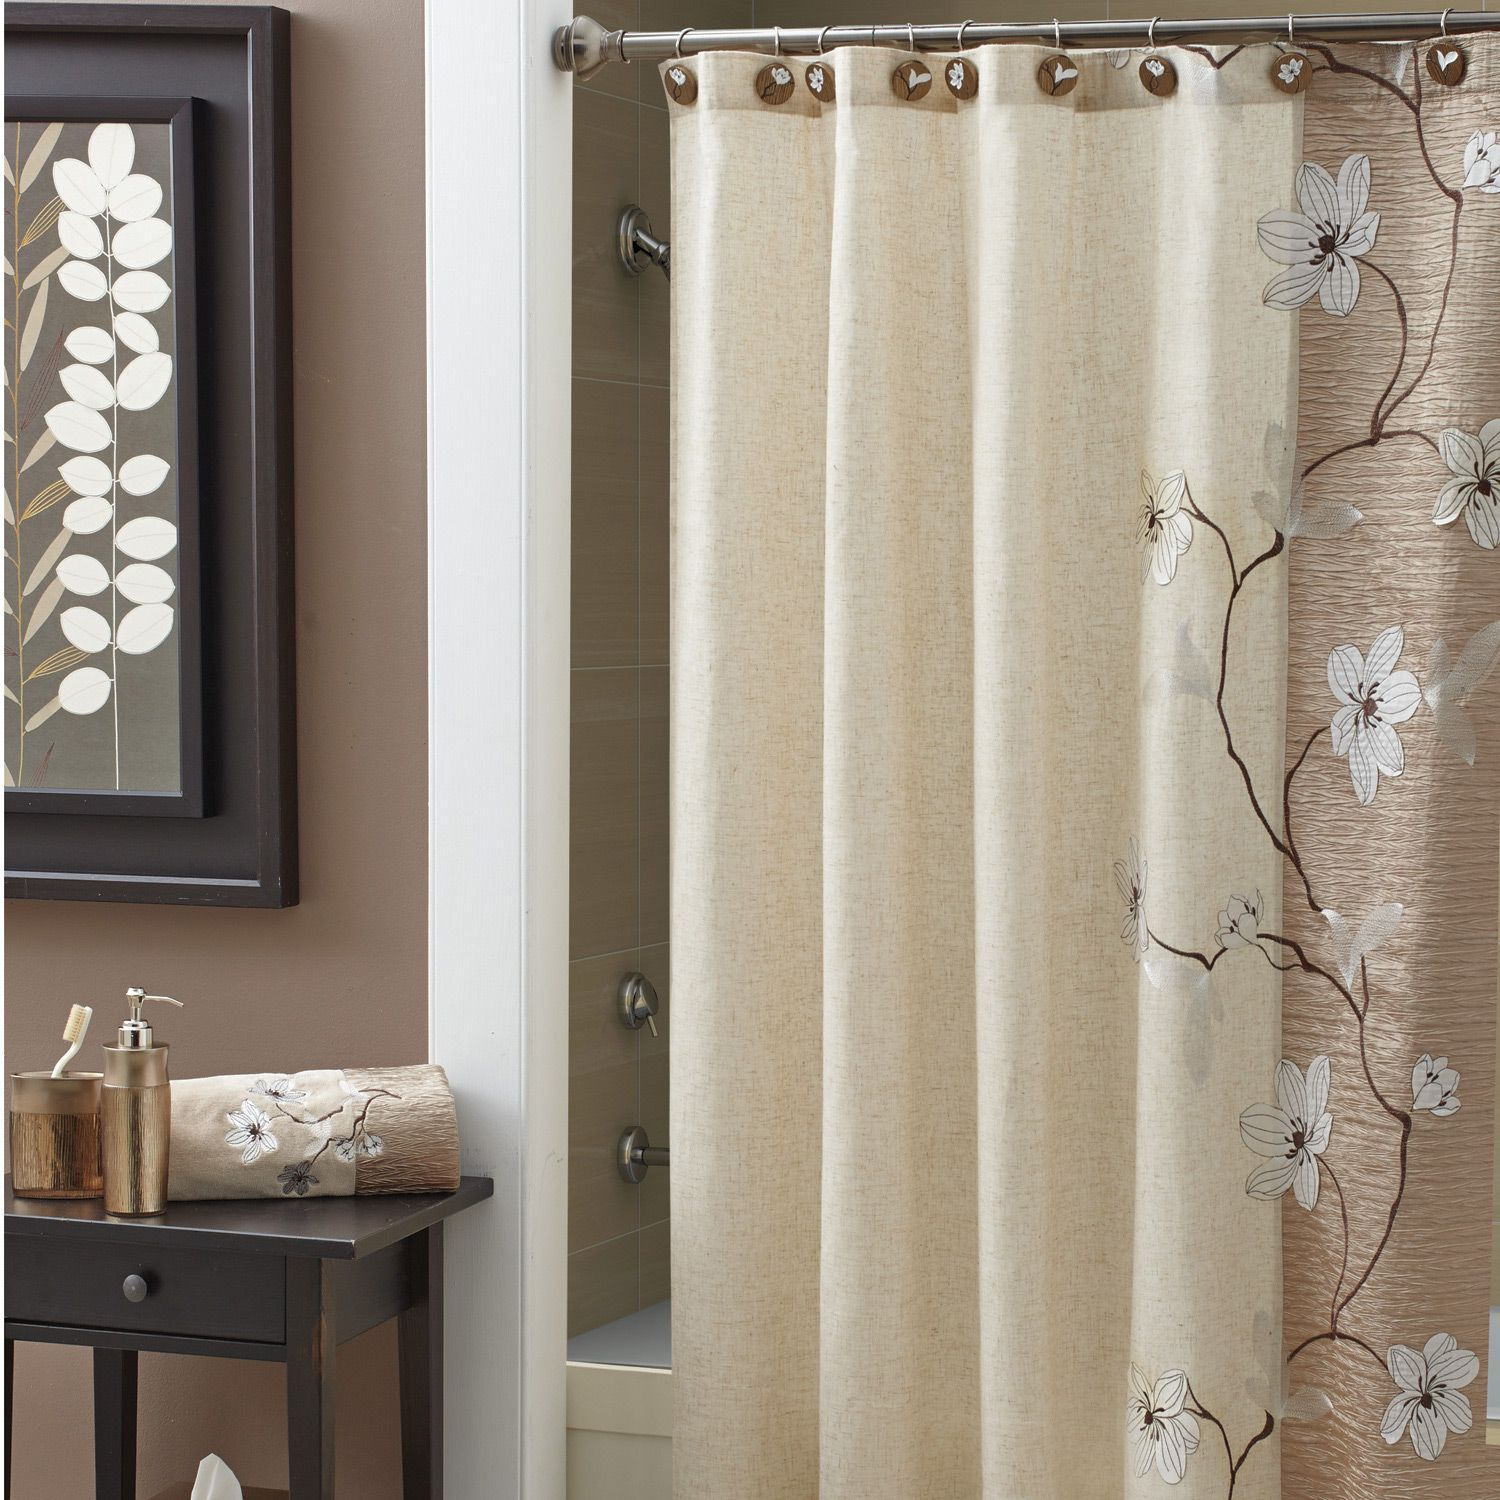 Enchanting Bathroom Shower Curtain Ideas Photo 3 Design Your Home Pertaining To Size 1500 X